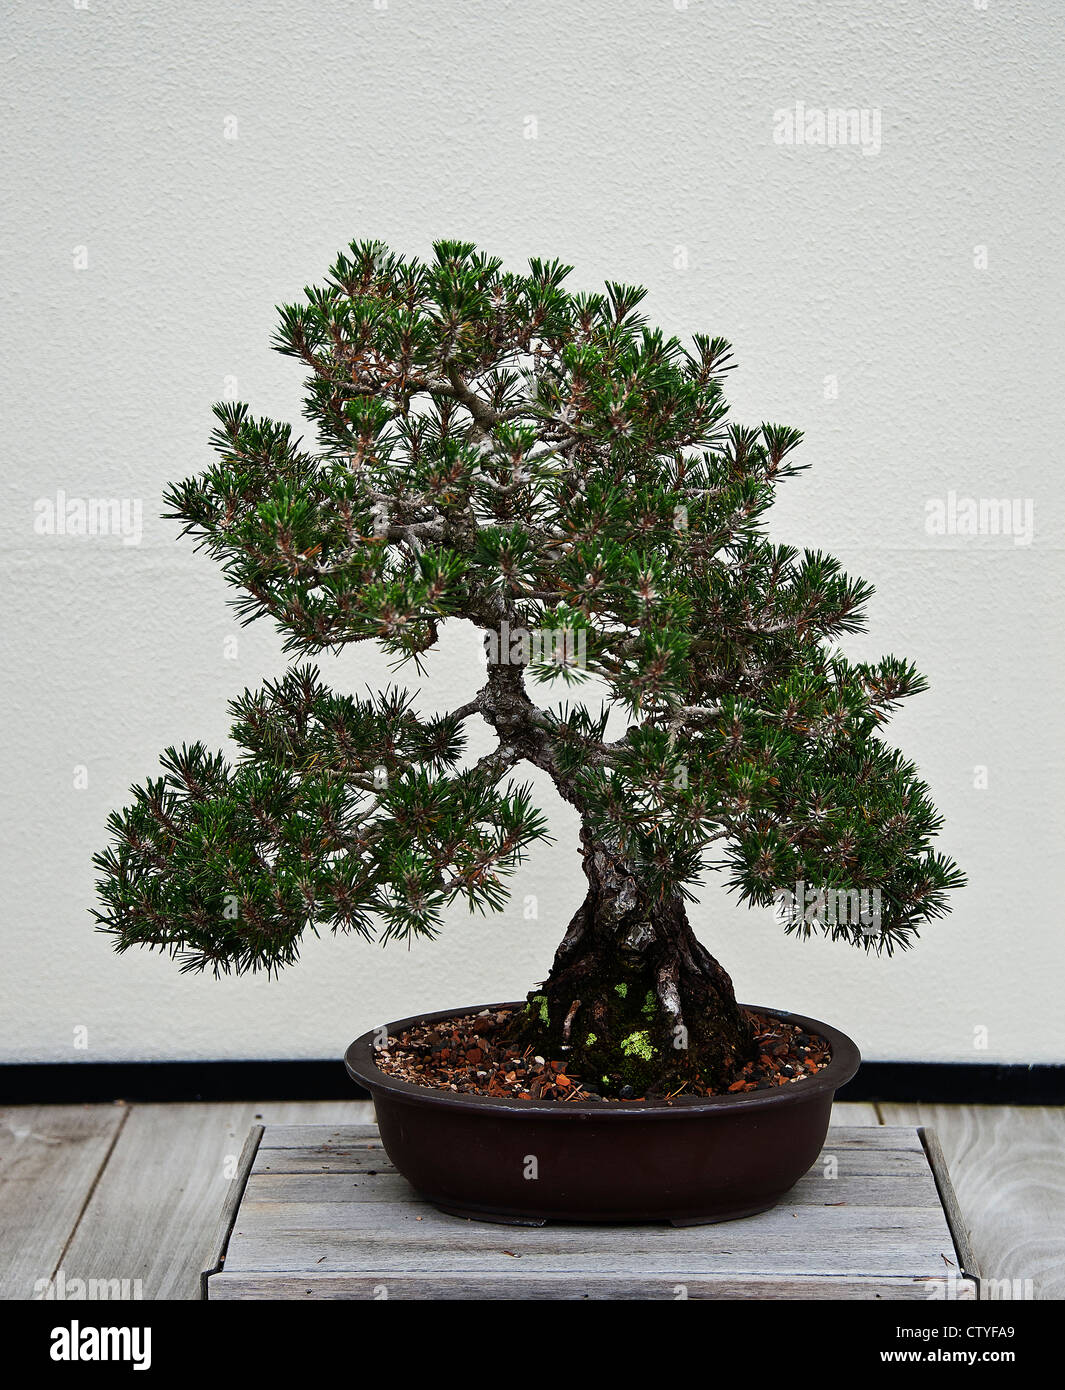 Japanese Black Pine bonsai tree. - Stock Image